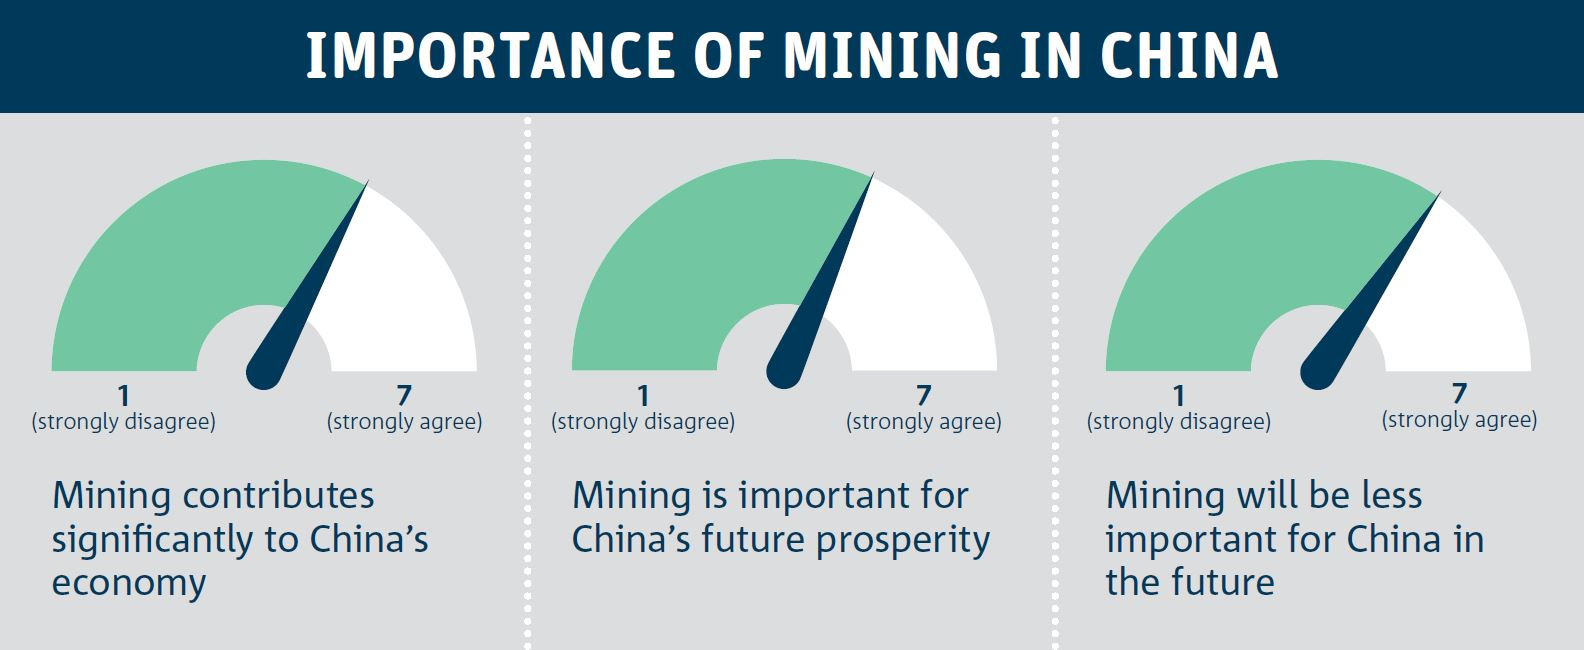 Survey results, presented as a dashborard of responses, showing that the Chinese see mining as important to China's economy and continuing prosperity.